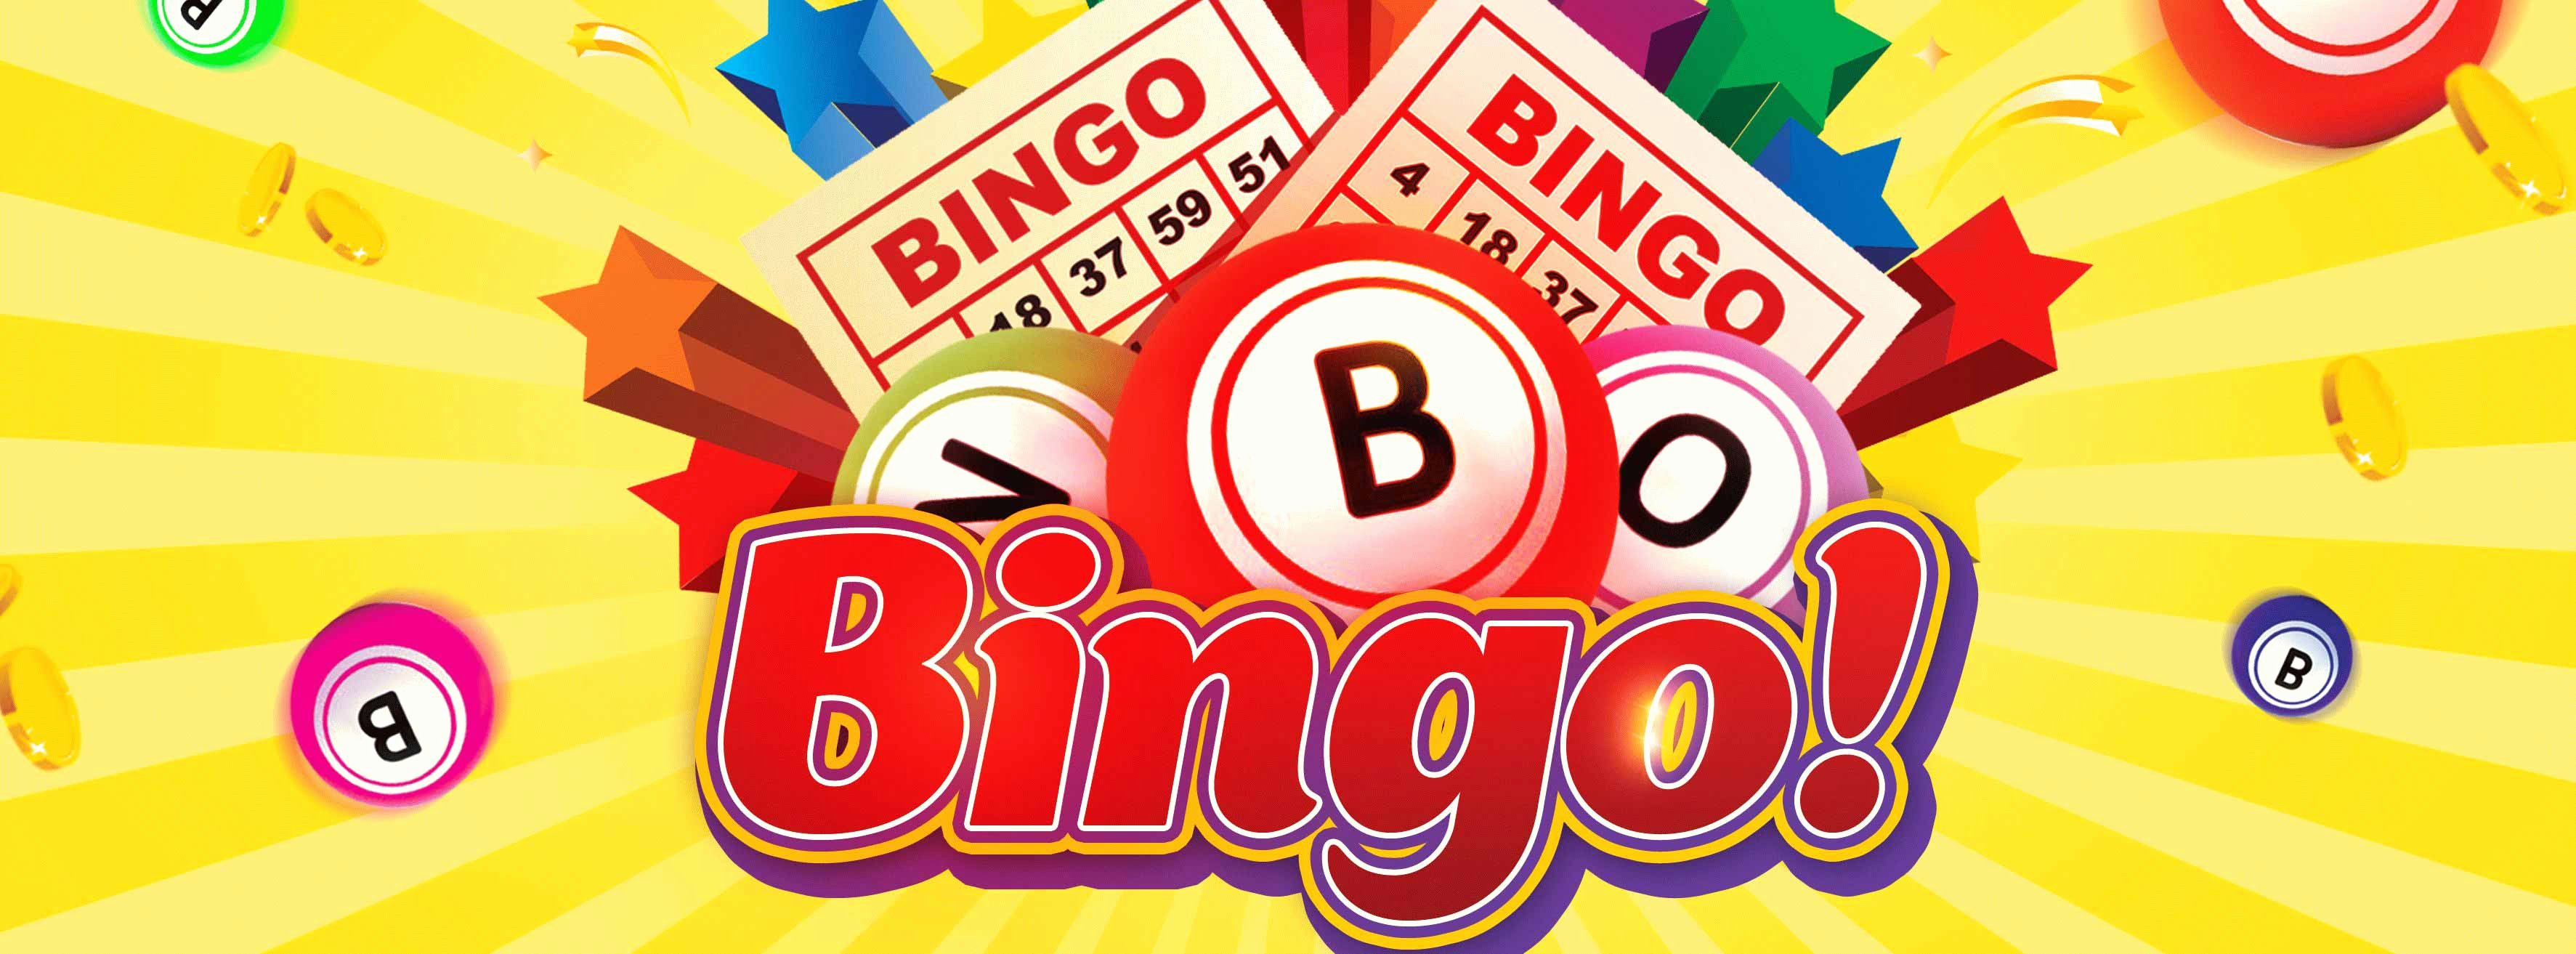 Bingo Flyer Template Free Lovely Bingo Psd Flyer Template 7053 Styleflyers